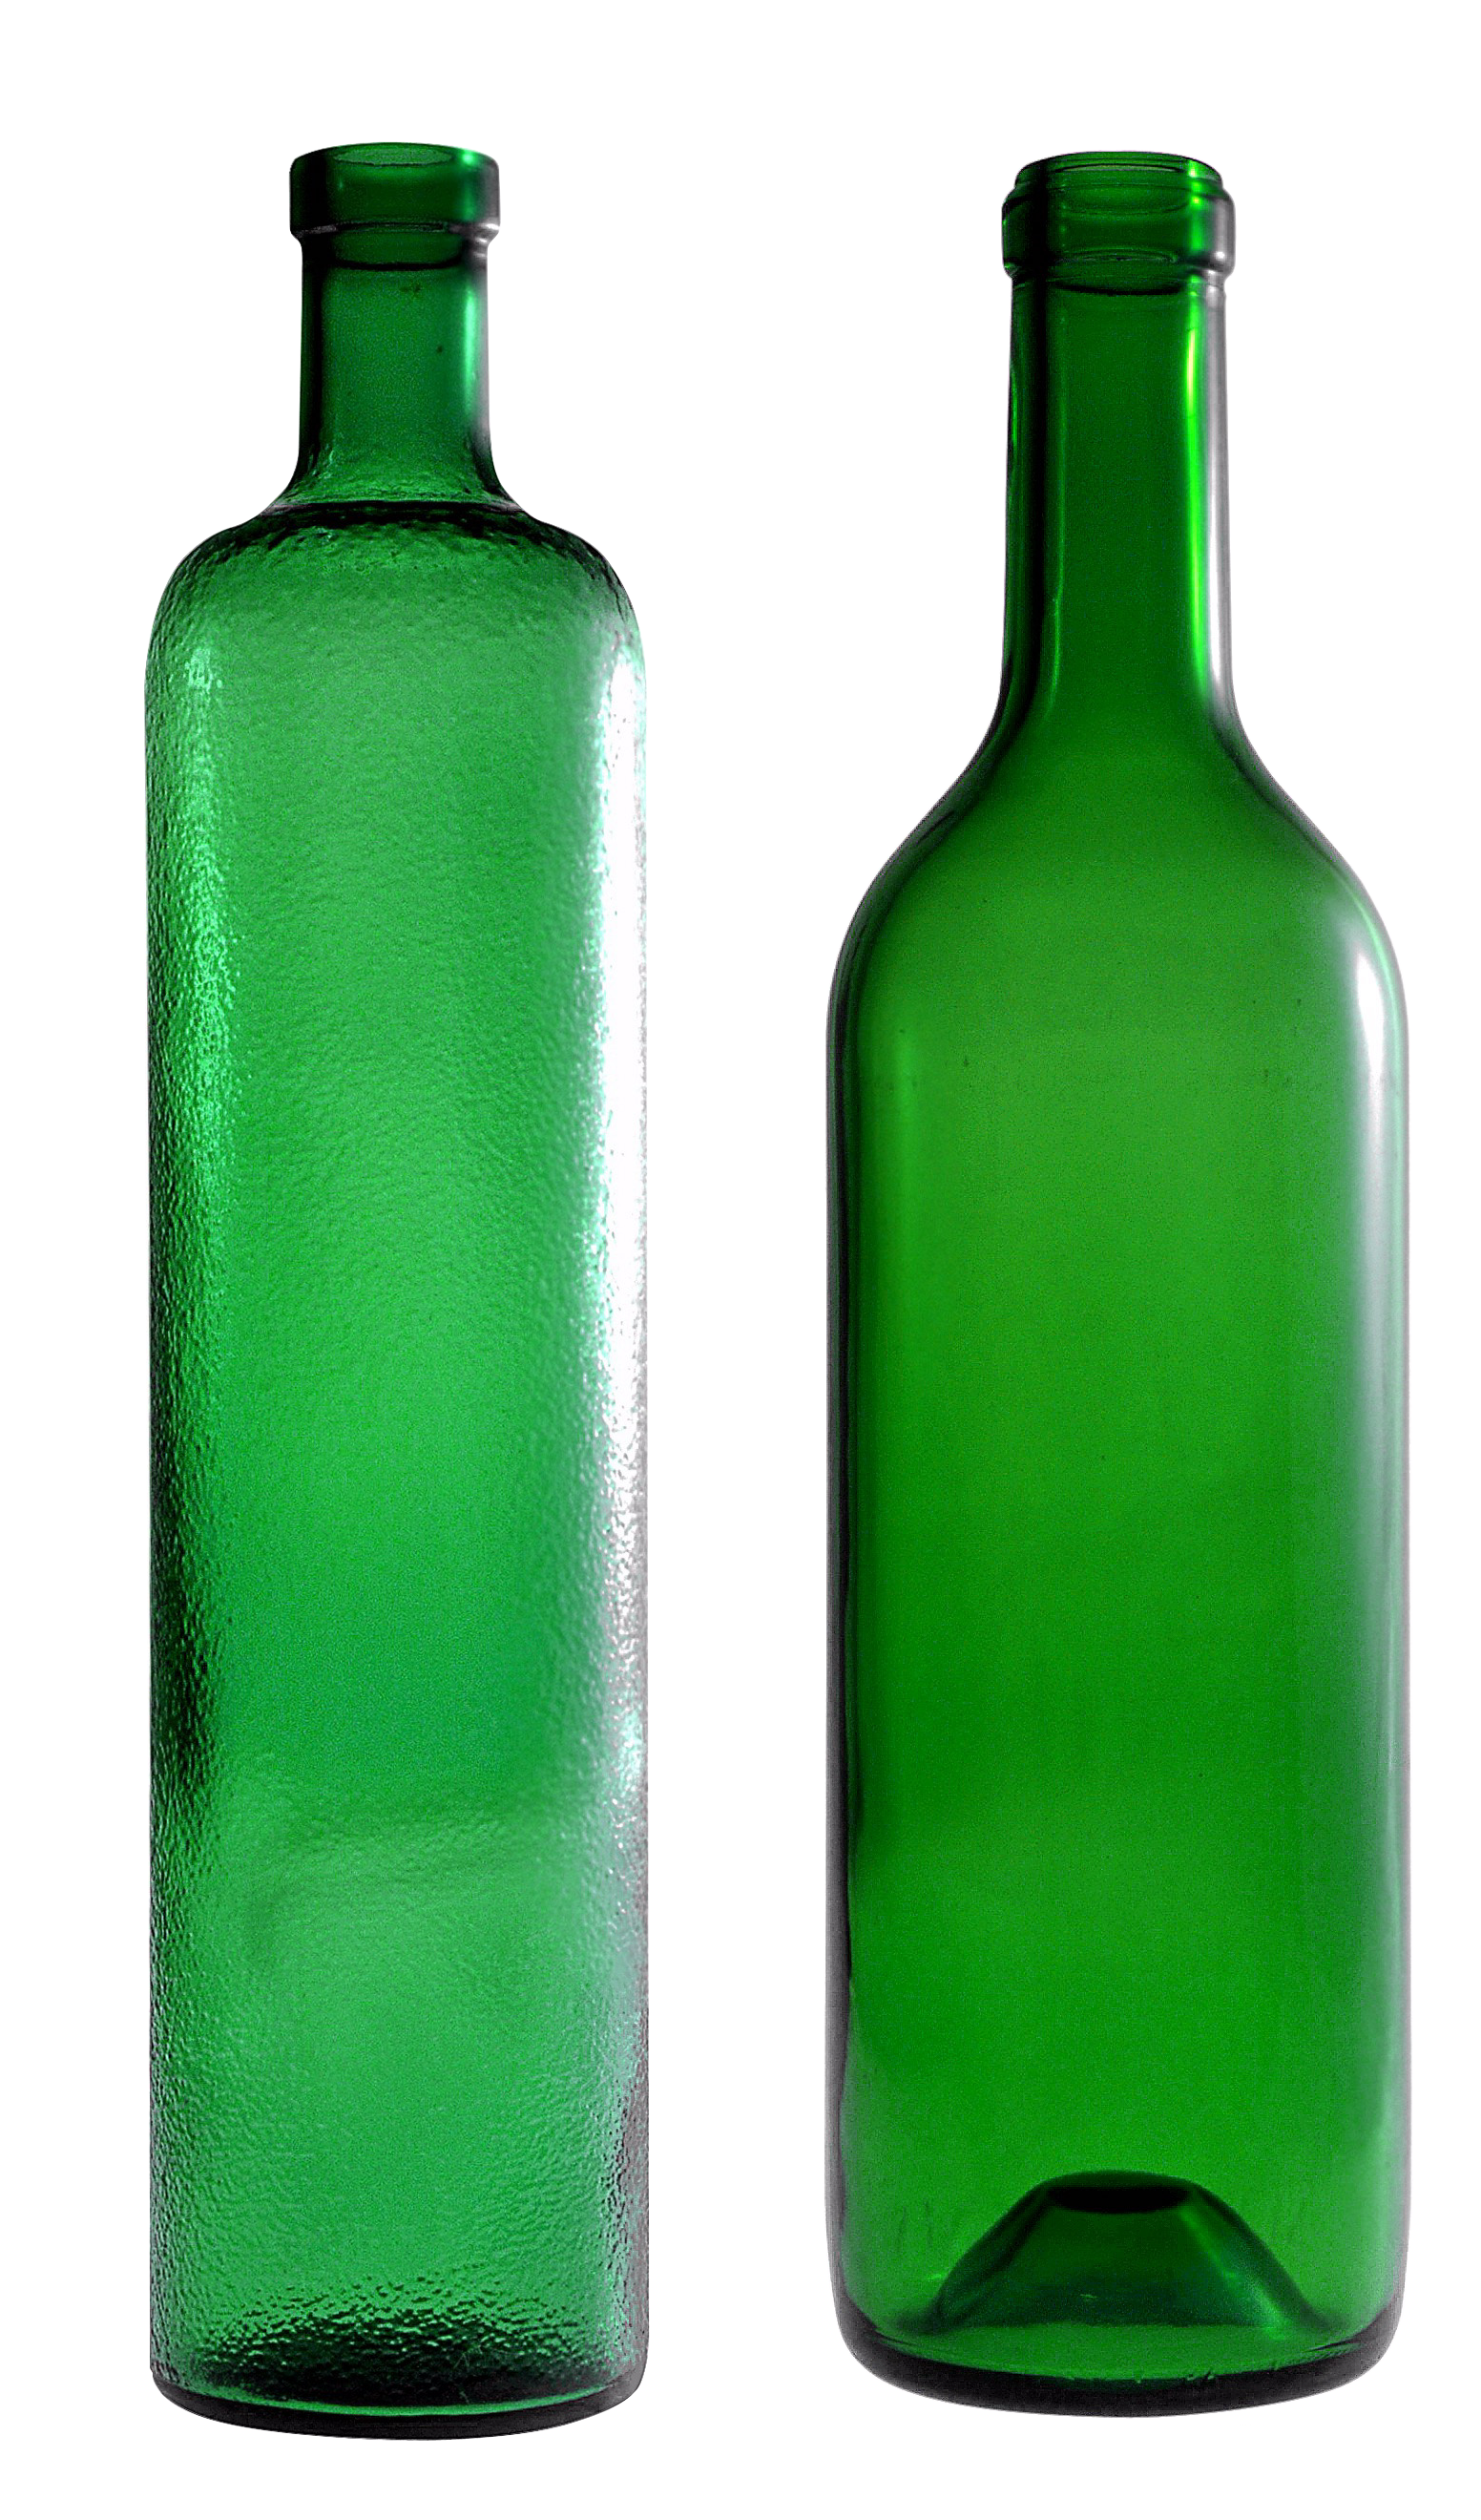 Blank beer bottle png. Empty s image purepng